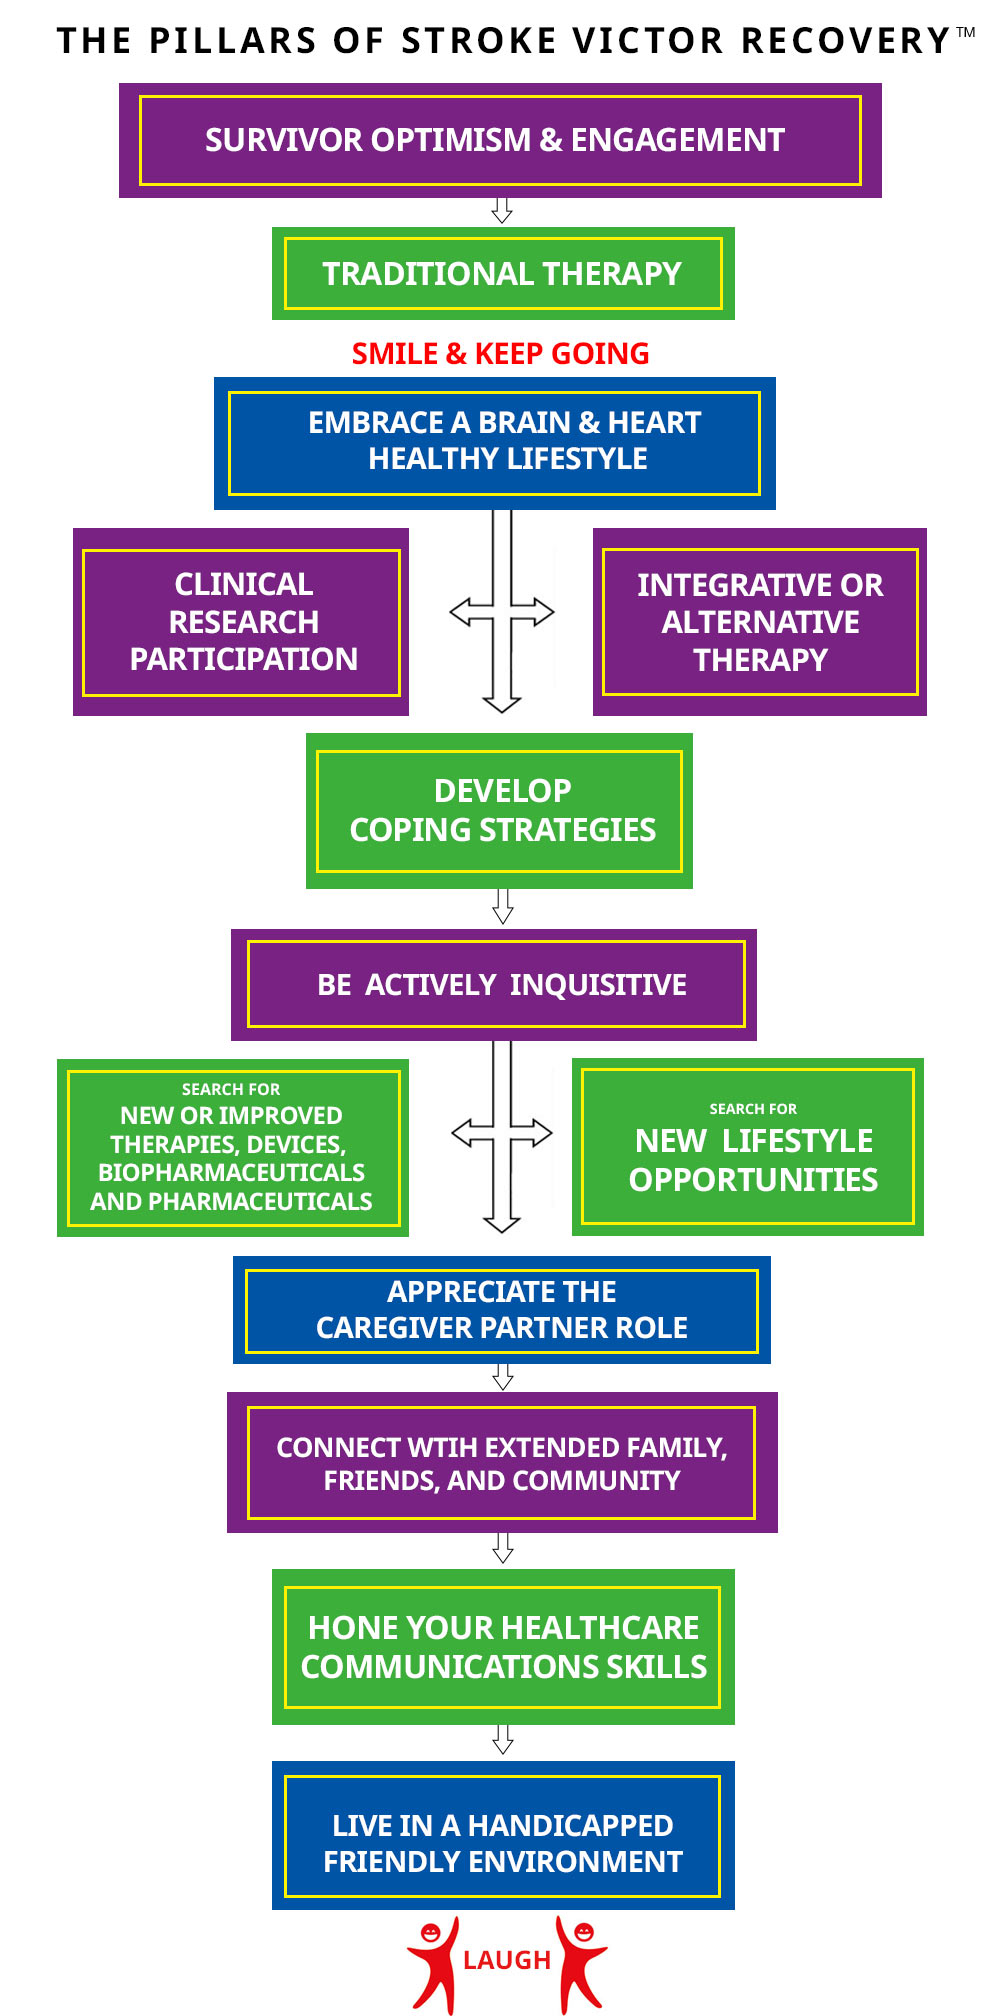 12 Pillars of Stroke Victor Recovery   Stroke Recovery Foundation